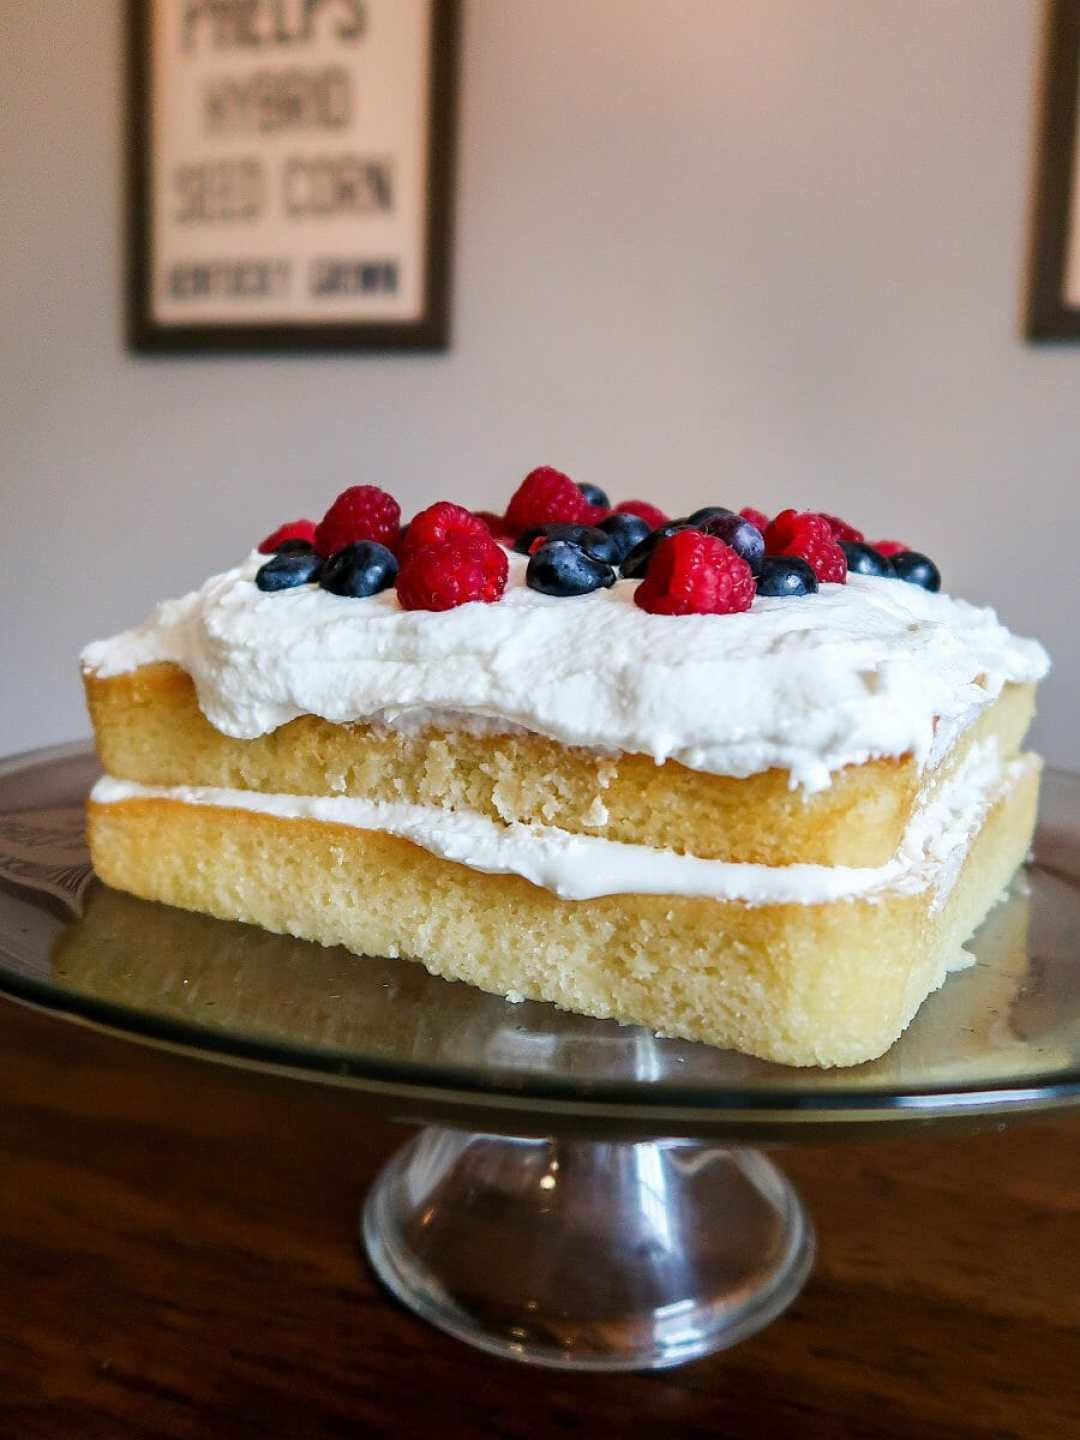 Lemon Ale 8 One Cake with Blueberries and Raspberries